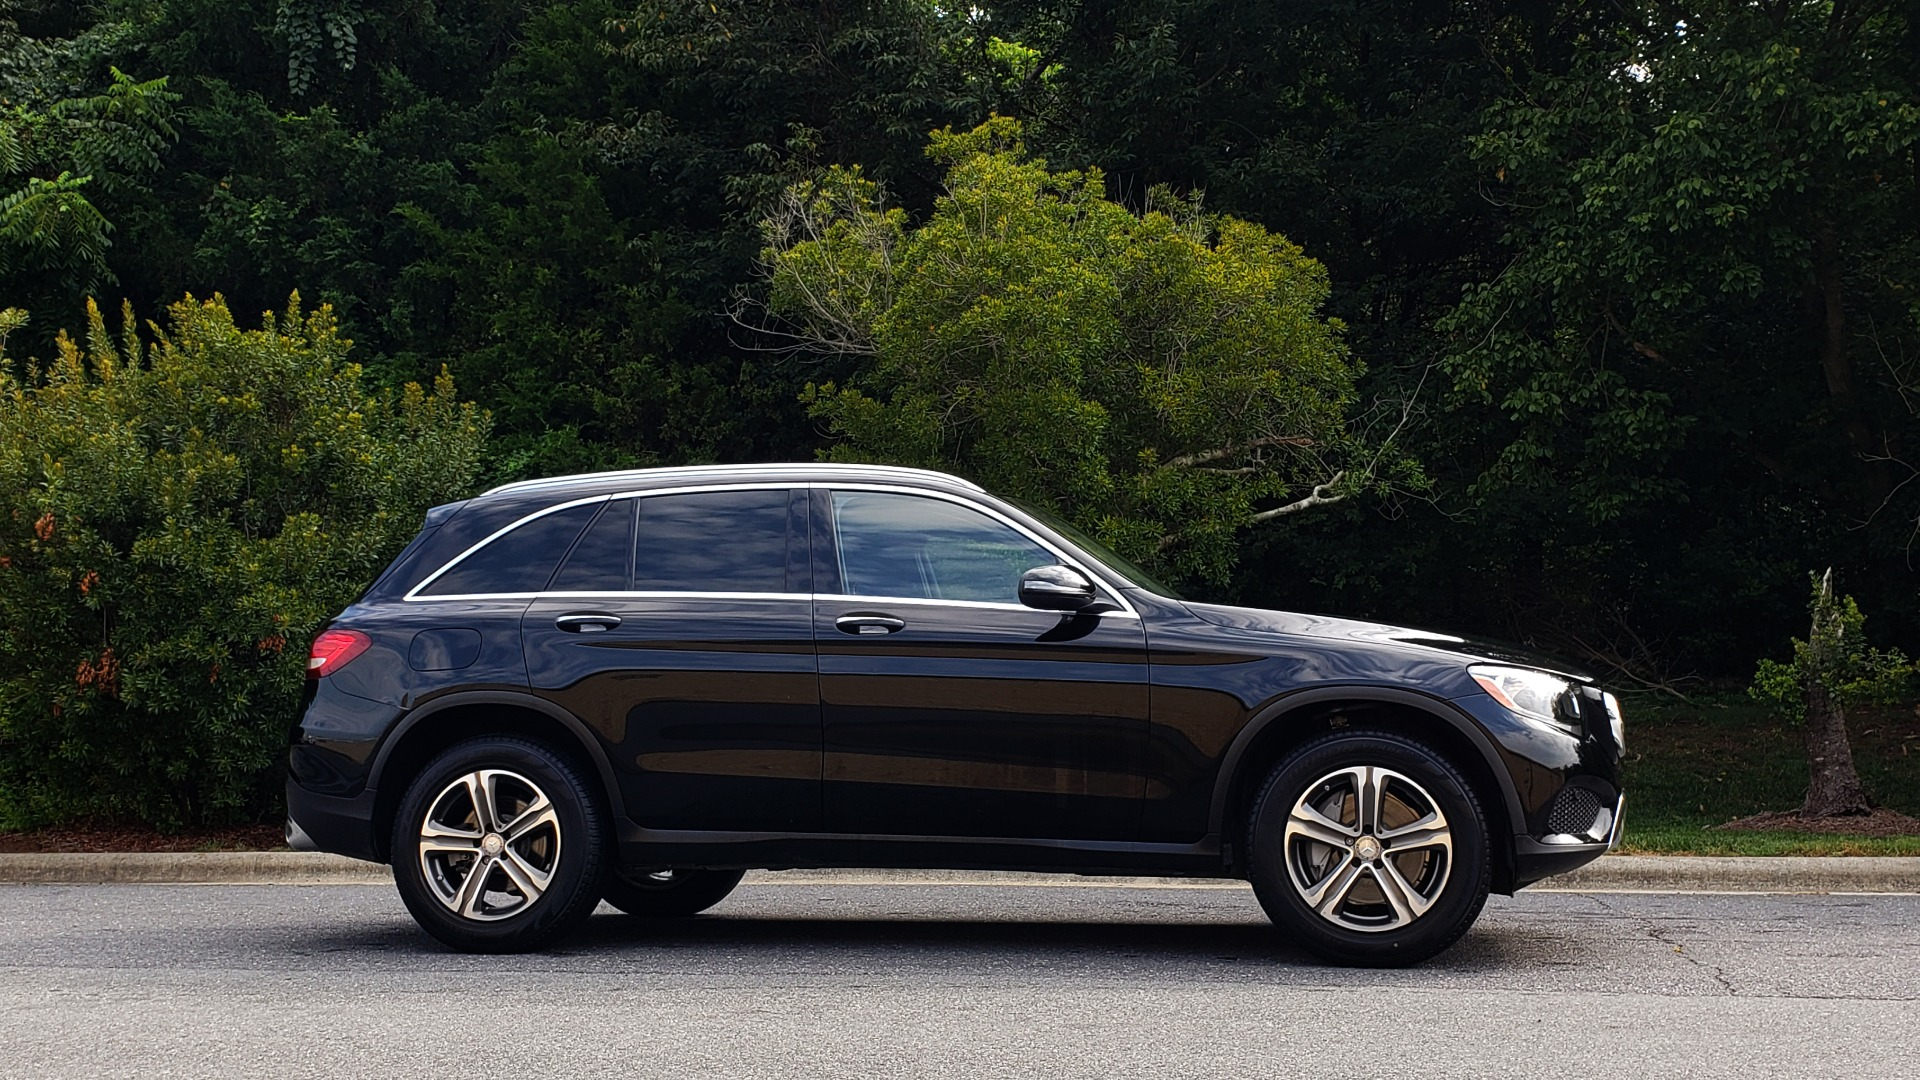 Used 2016 Mercedes-Benz GLC 300 / PANO-ROOF / HEATED SEATS / REARVIEW / NEW TIRES for sale Sold at Formula Imports in Charlotte NC 28227 5